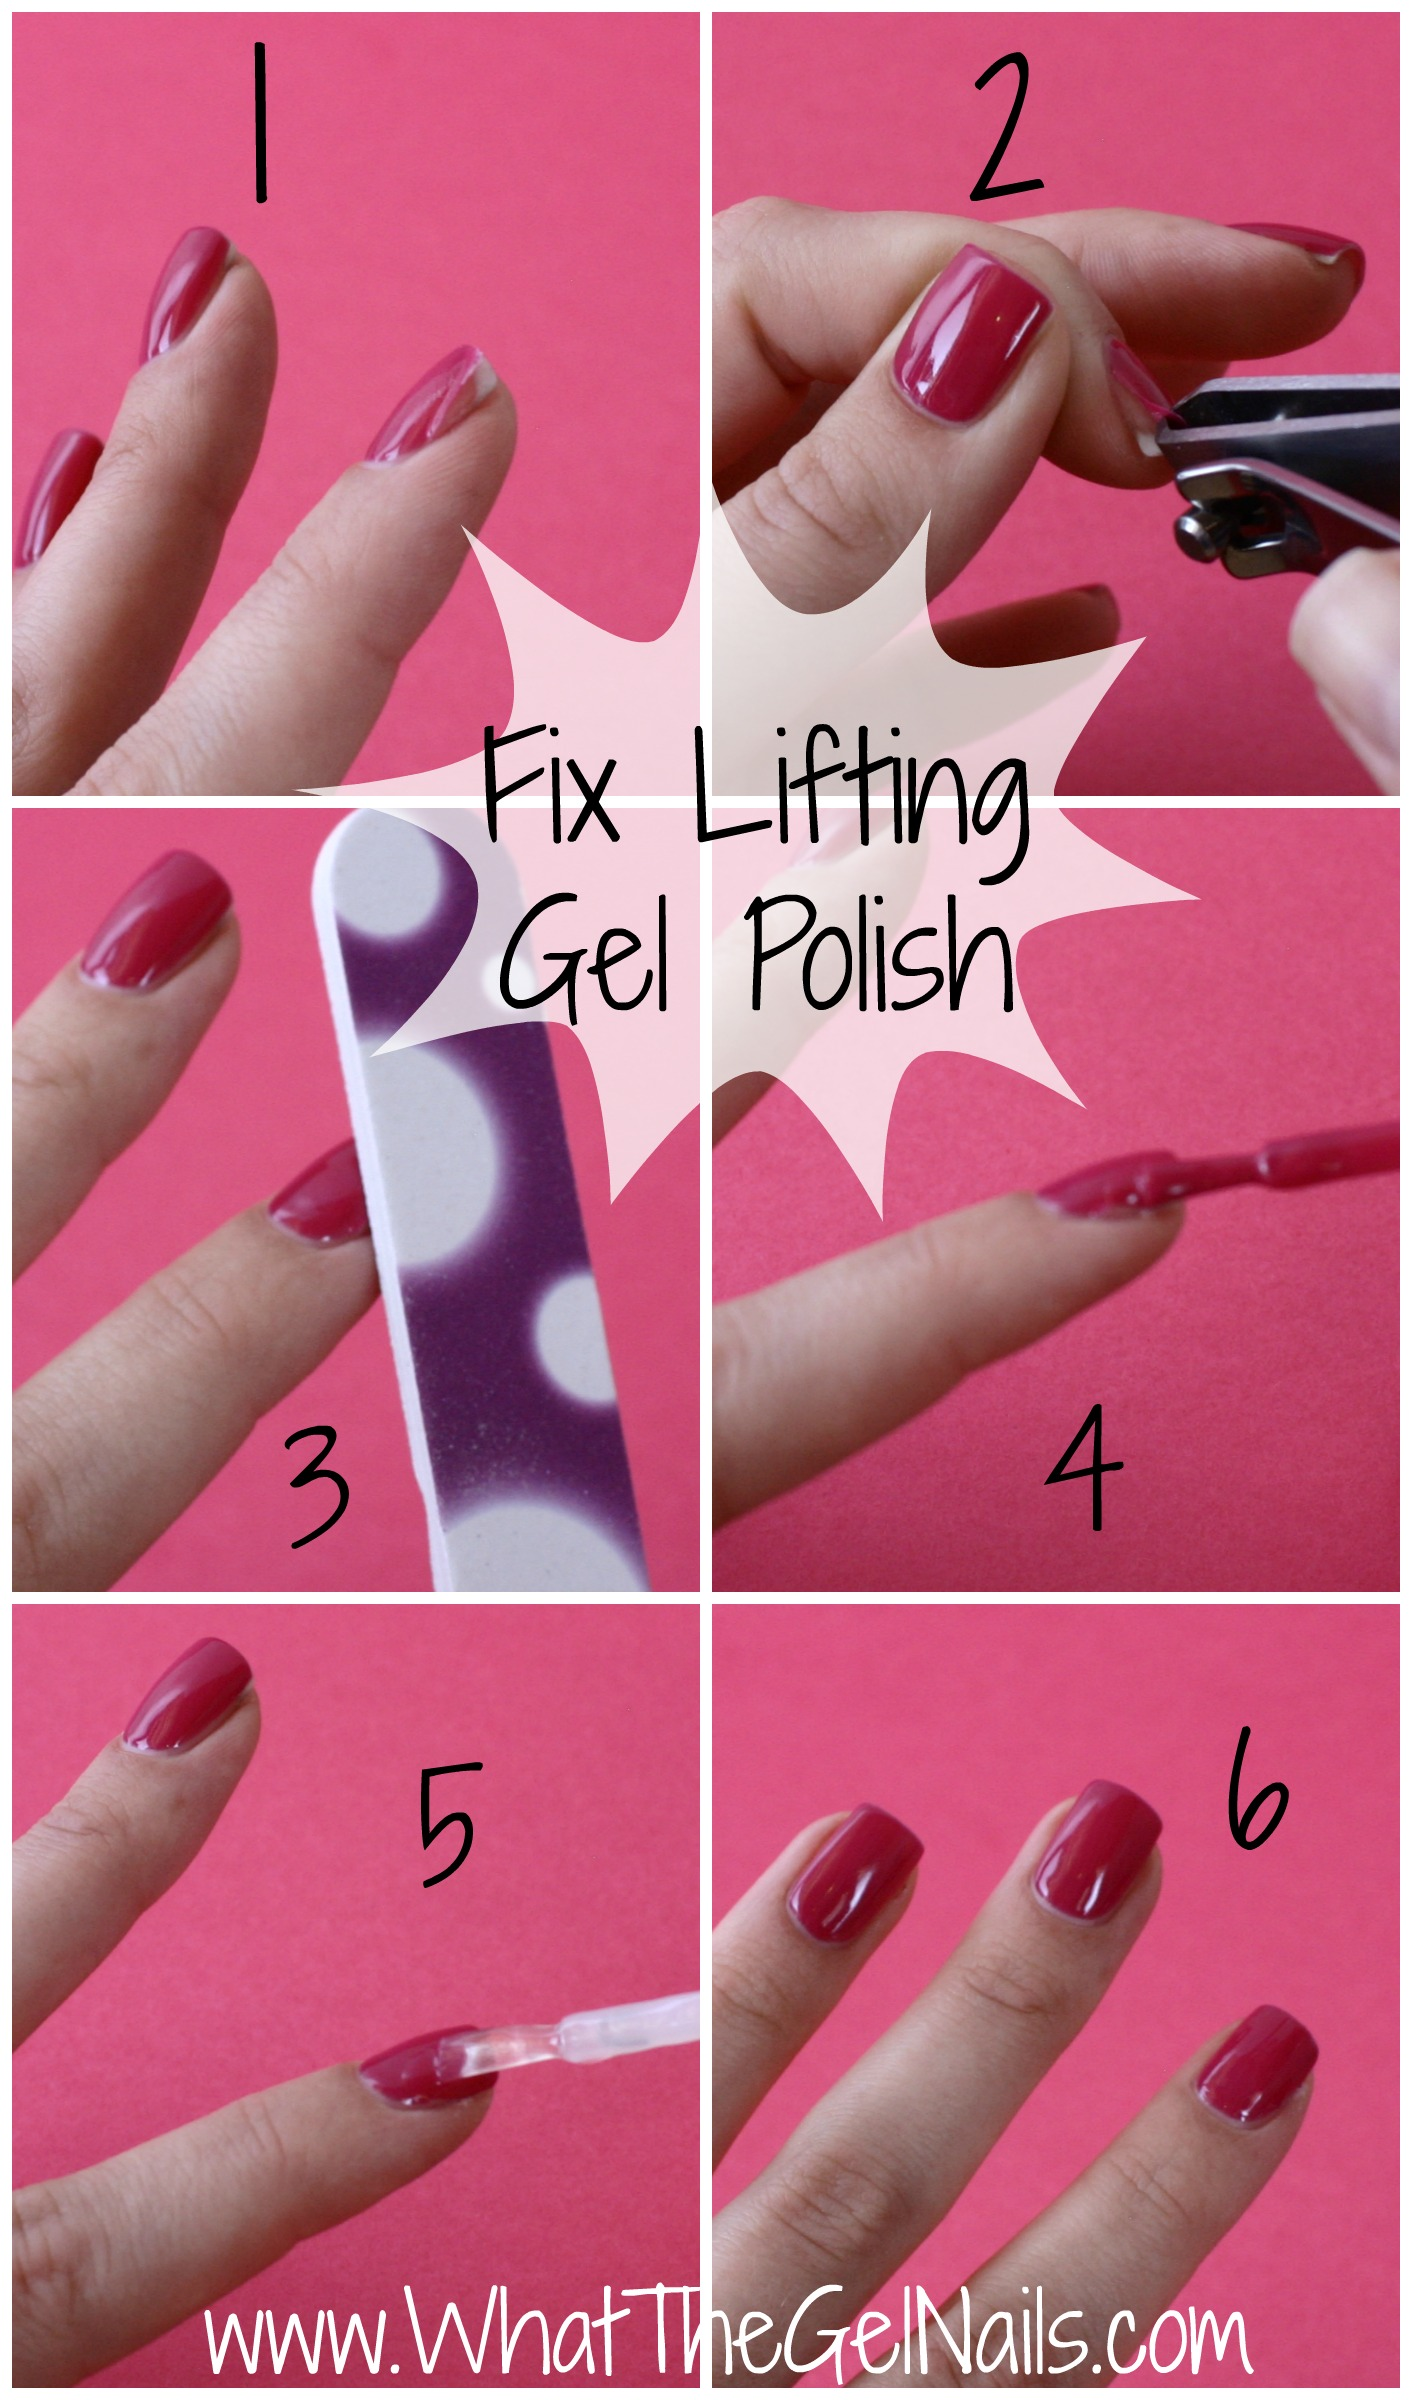 Tips and tricks for gel polish lifting fix lifting gel polish in just 5 steps plus more tips and tricks for gel solutioingenieria